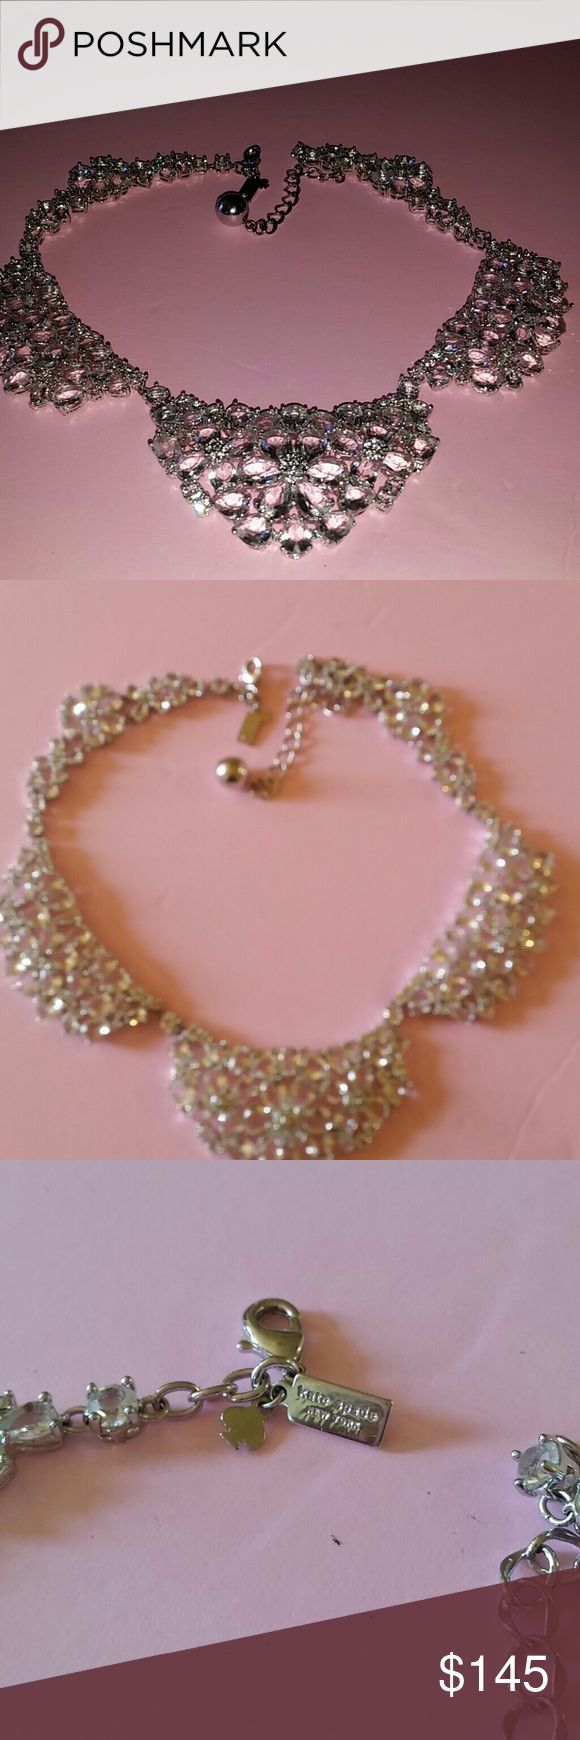 KATE SPADE STATEMENT NECKLACE $215.00 FIRM New! With Out Tag.  Superior Sparkle.  Doesn't  get any better. In comparison to my real diamonds this gives much competition!  NO foil back CRYSTALS here. It does not have cuts or facets on the surface of stones. Shaped in six petal flowers. There is so much delicate detail in this piece  Stones have flat surface and beveled edges.  This is different!  MORE pics will be posted kate spade Jewelry Necklaces